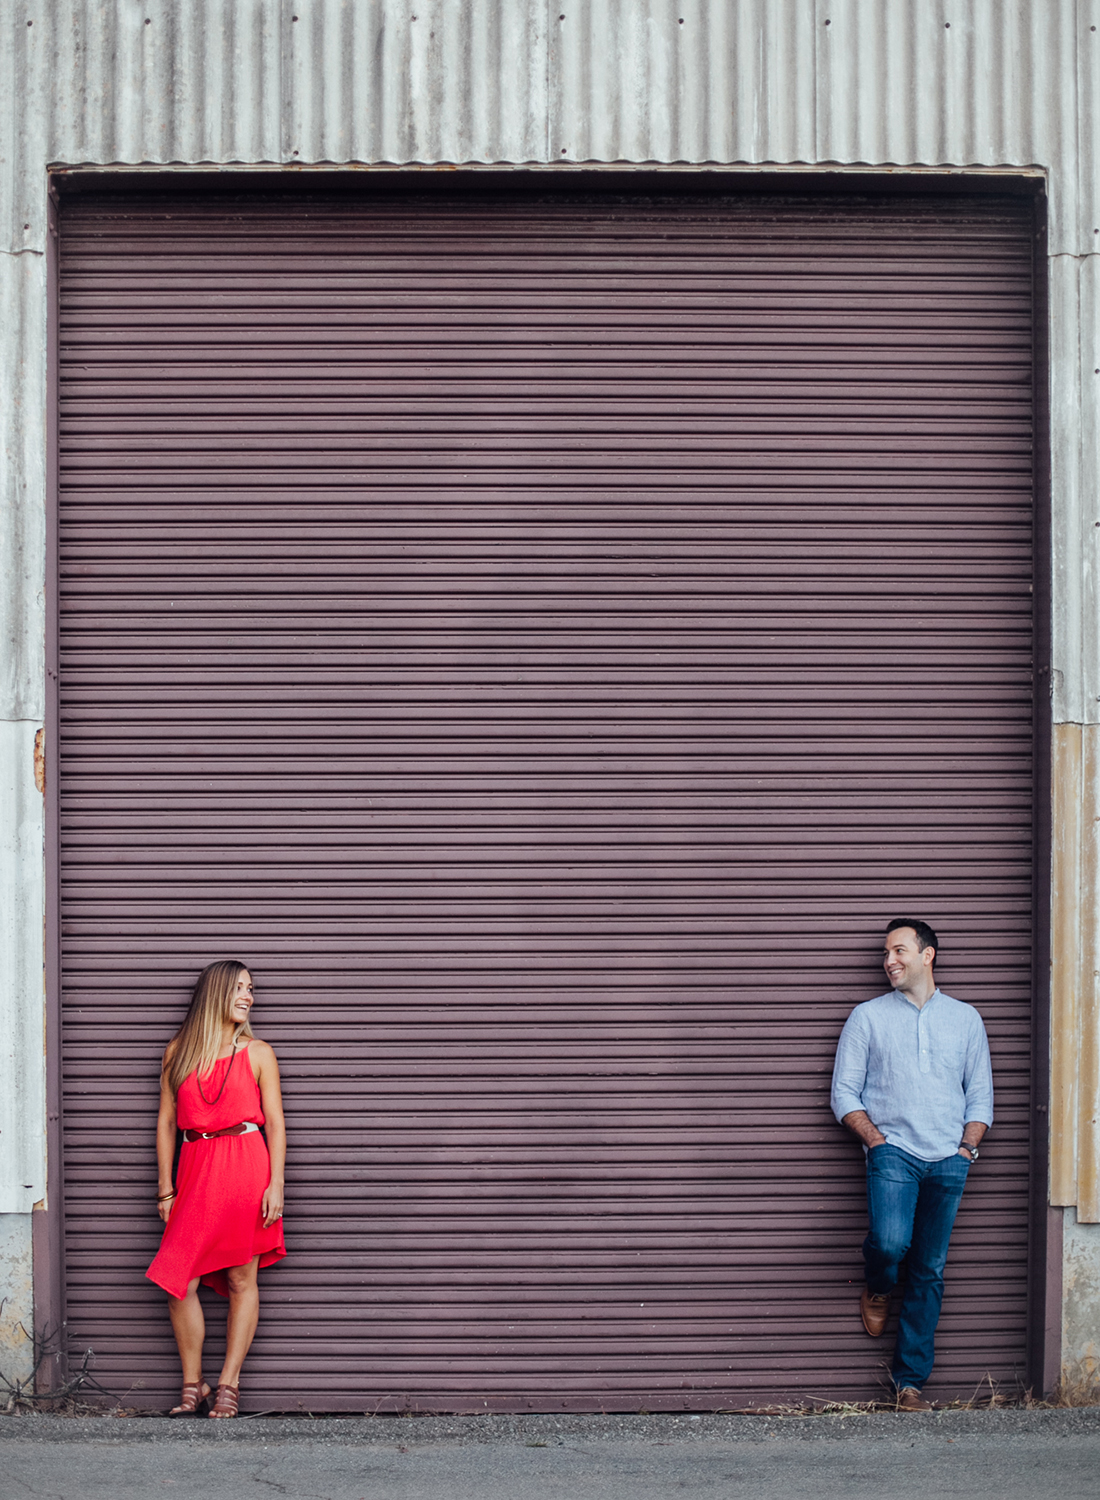 san-francisco-bay-area-engagement-photo-13.html